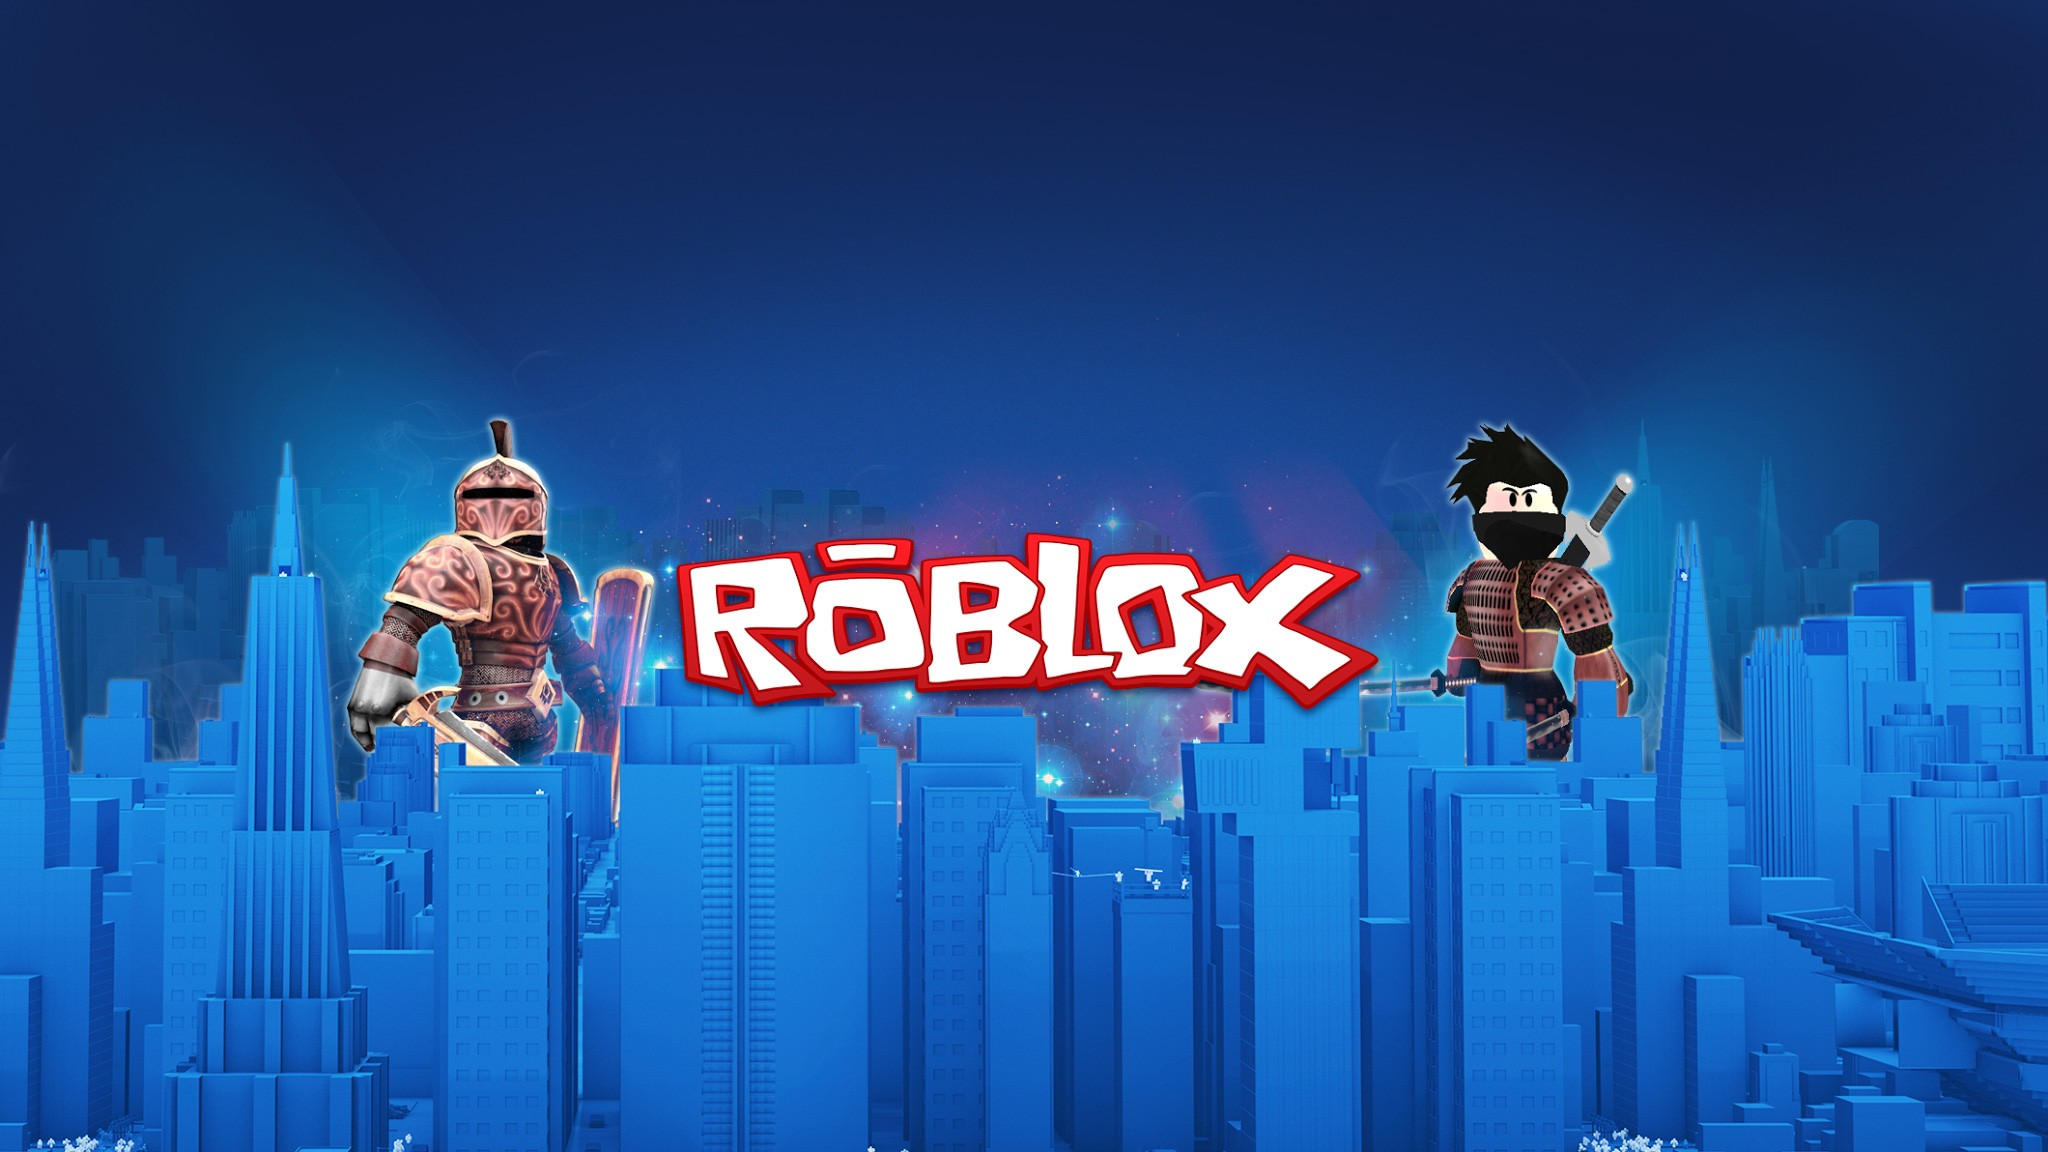 Roblox Code Iphone Wallpaper Best New Wallpapers Hd